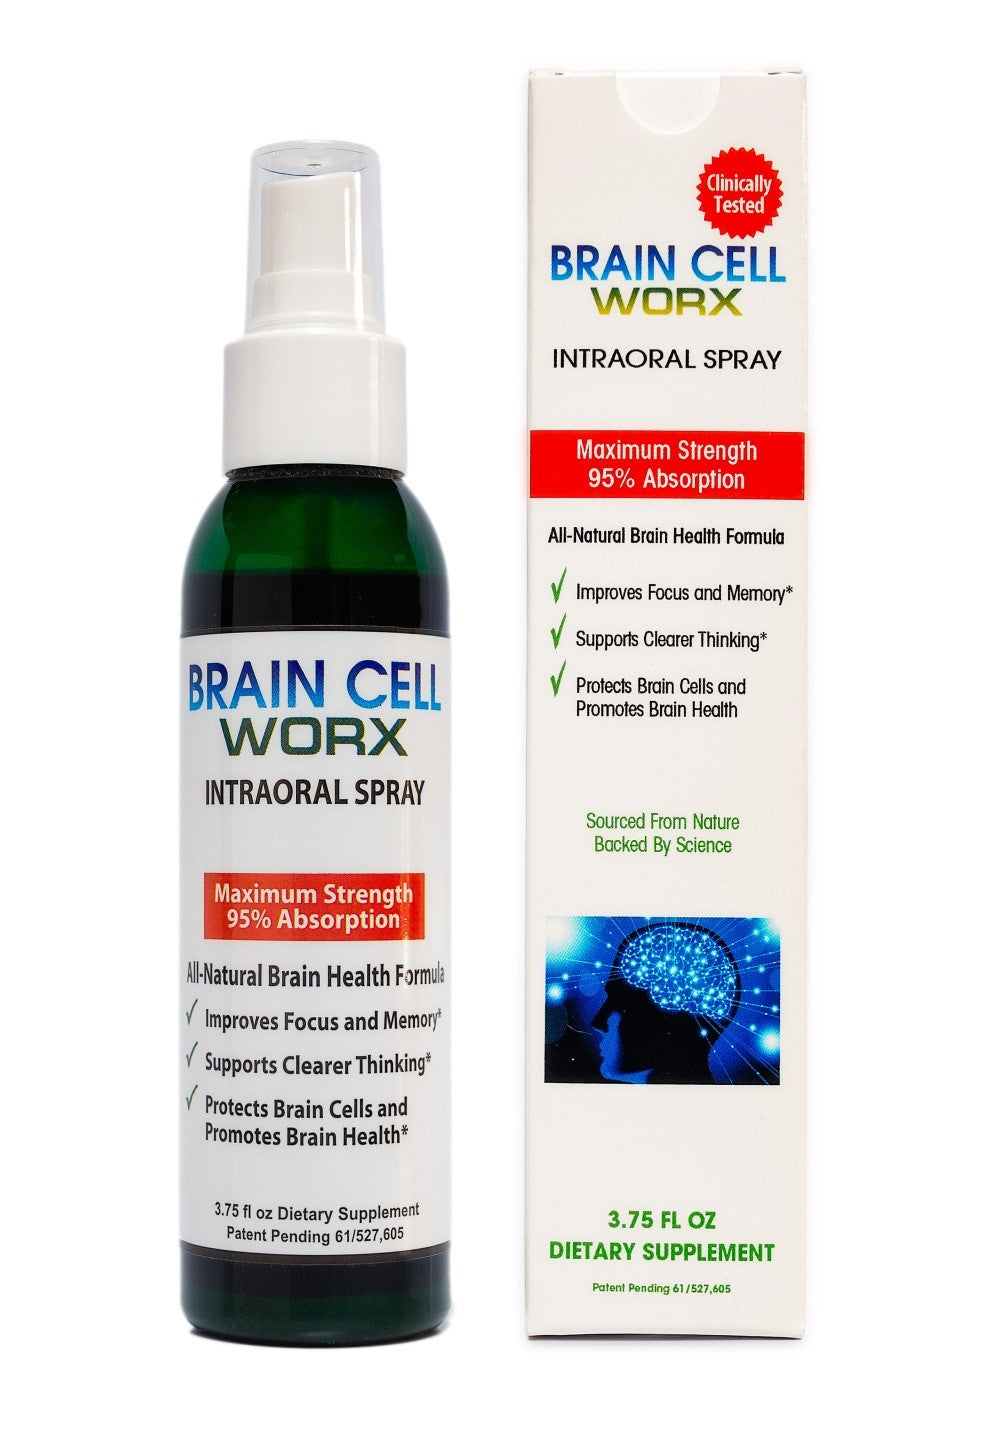 Brain Cell Worx® Intraoral Spray